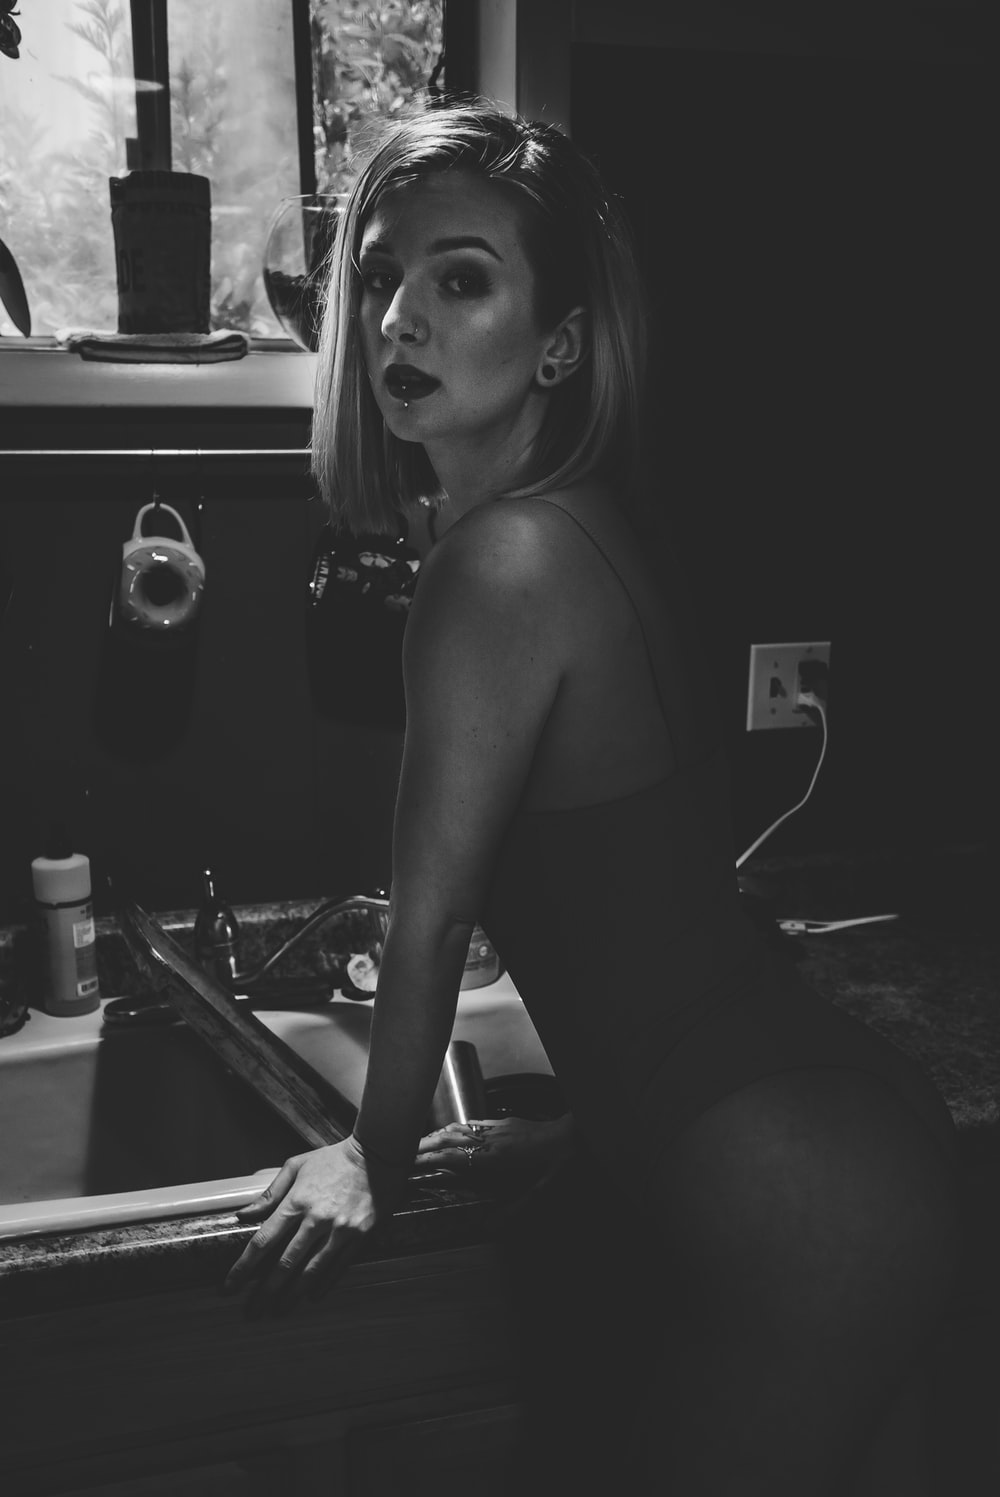 woman standing infront of sink